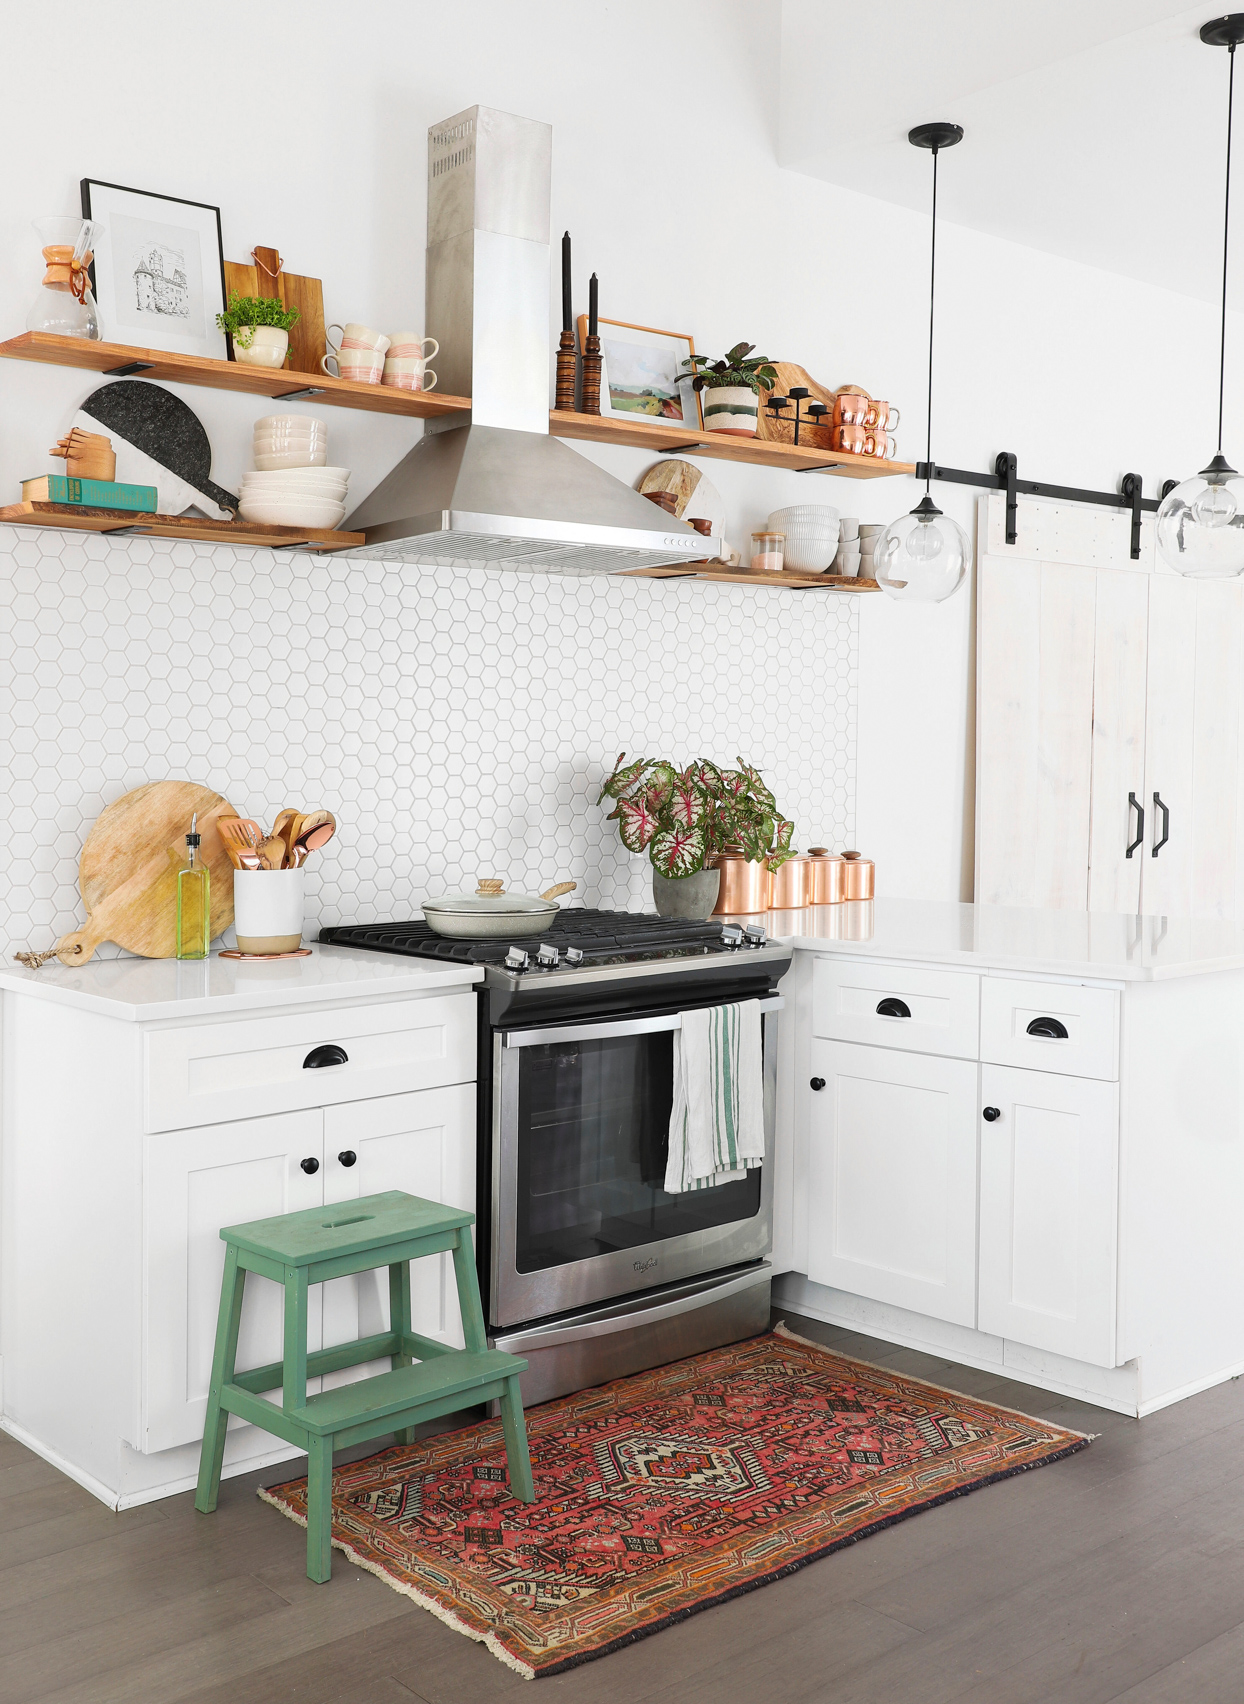 kitchen with wooden shelving and white cabinets